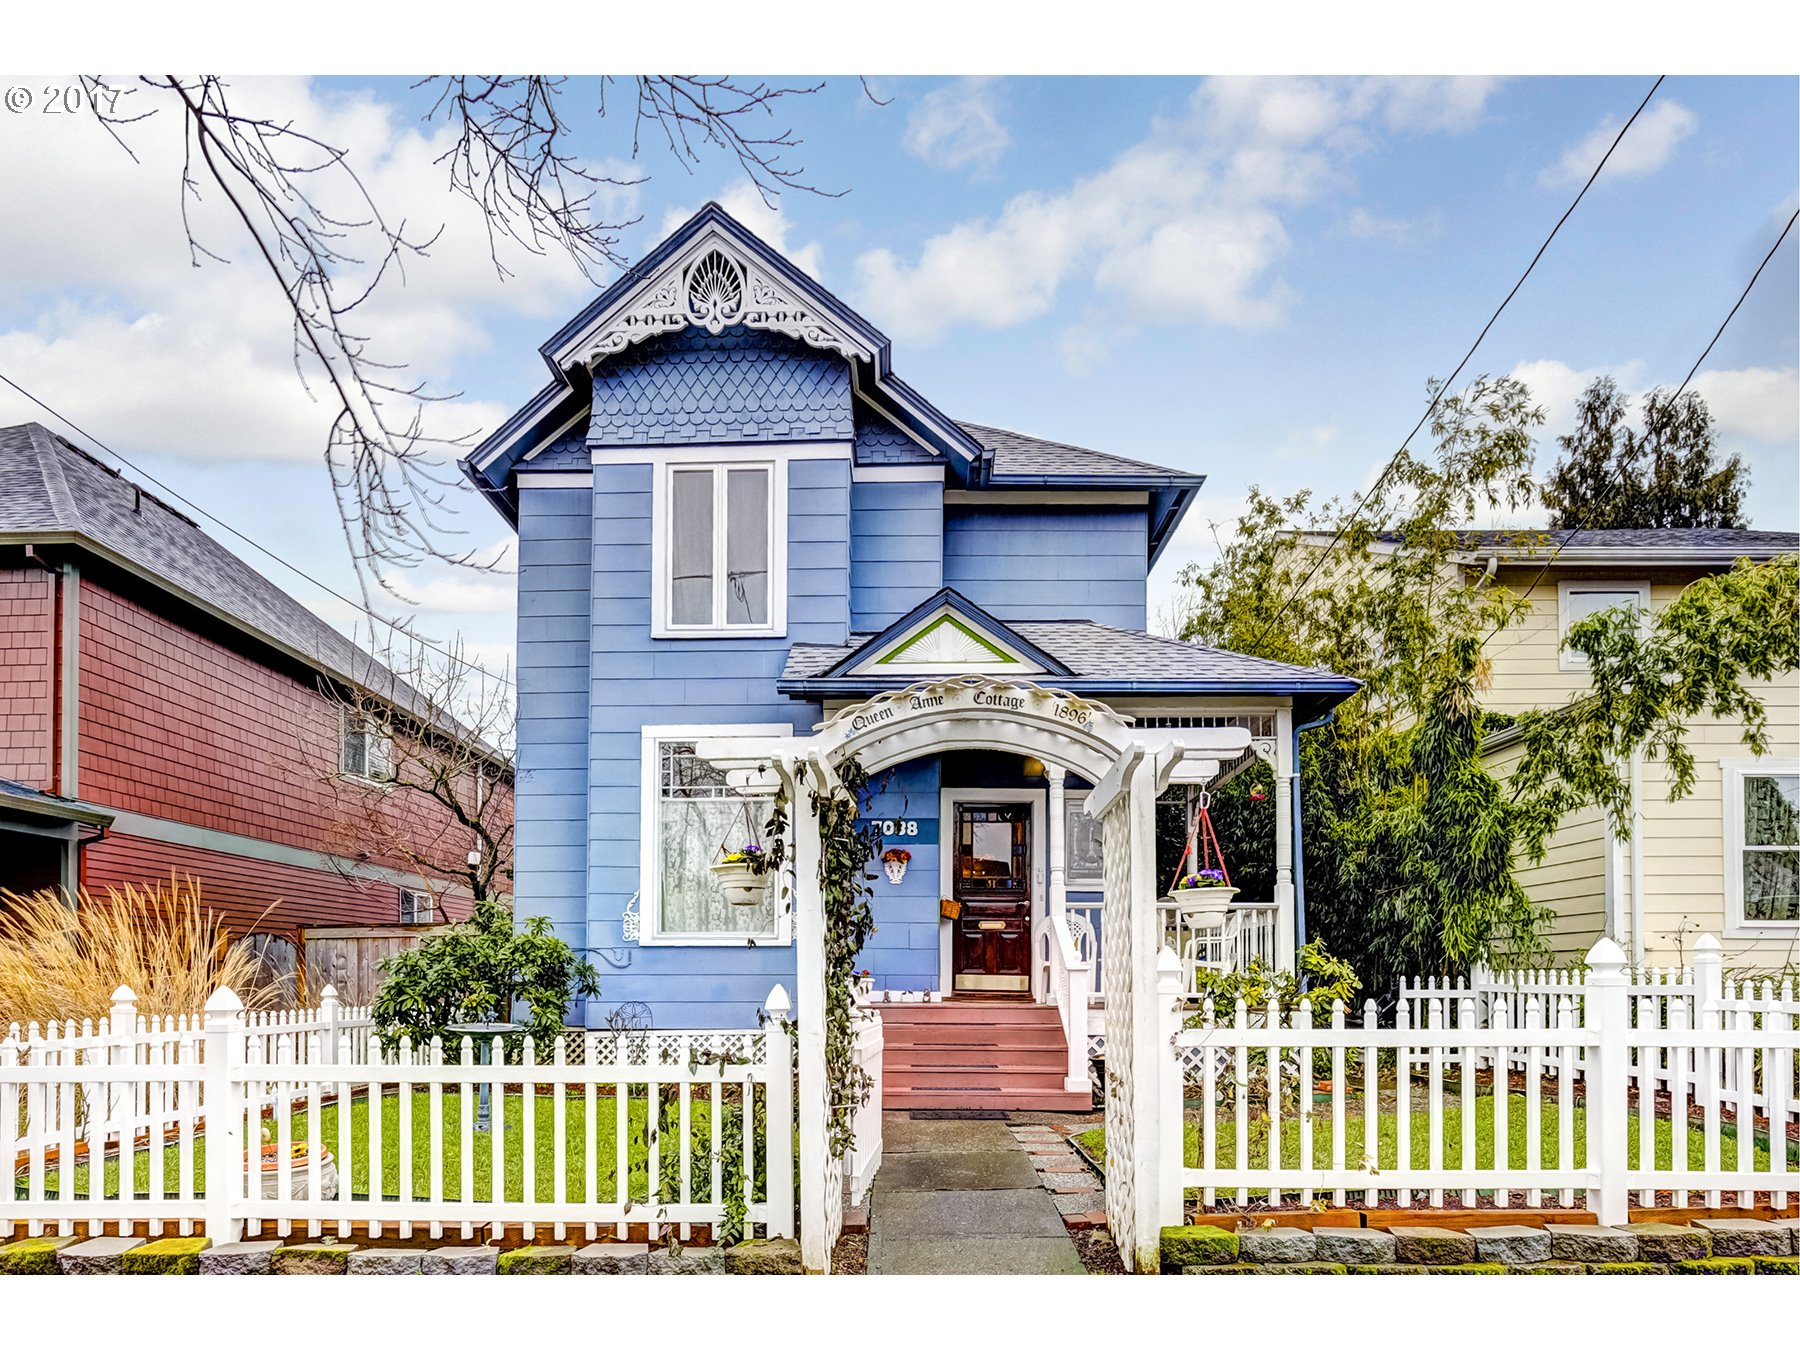 Historic Victorian charm in Arbor Lodge. This elegant Queen Anne has been restored for the modern family. High ceilings and period details throughout. Royal Ann cherry tree, blueberries and fragrant roses highlight the tidy yard. Wonderful, walkable east side neighborhood. Live close to city center in a quiet, safe environment. One block to water and city skyline views on Willamette. Two blocks to your coffee or dining on Lombard.